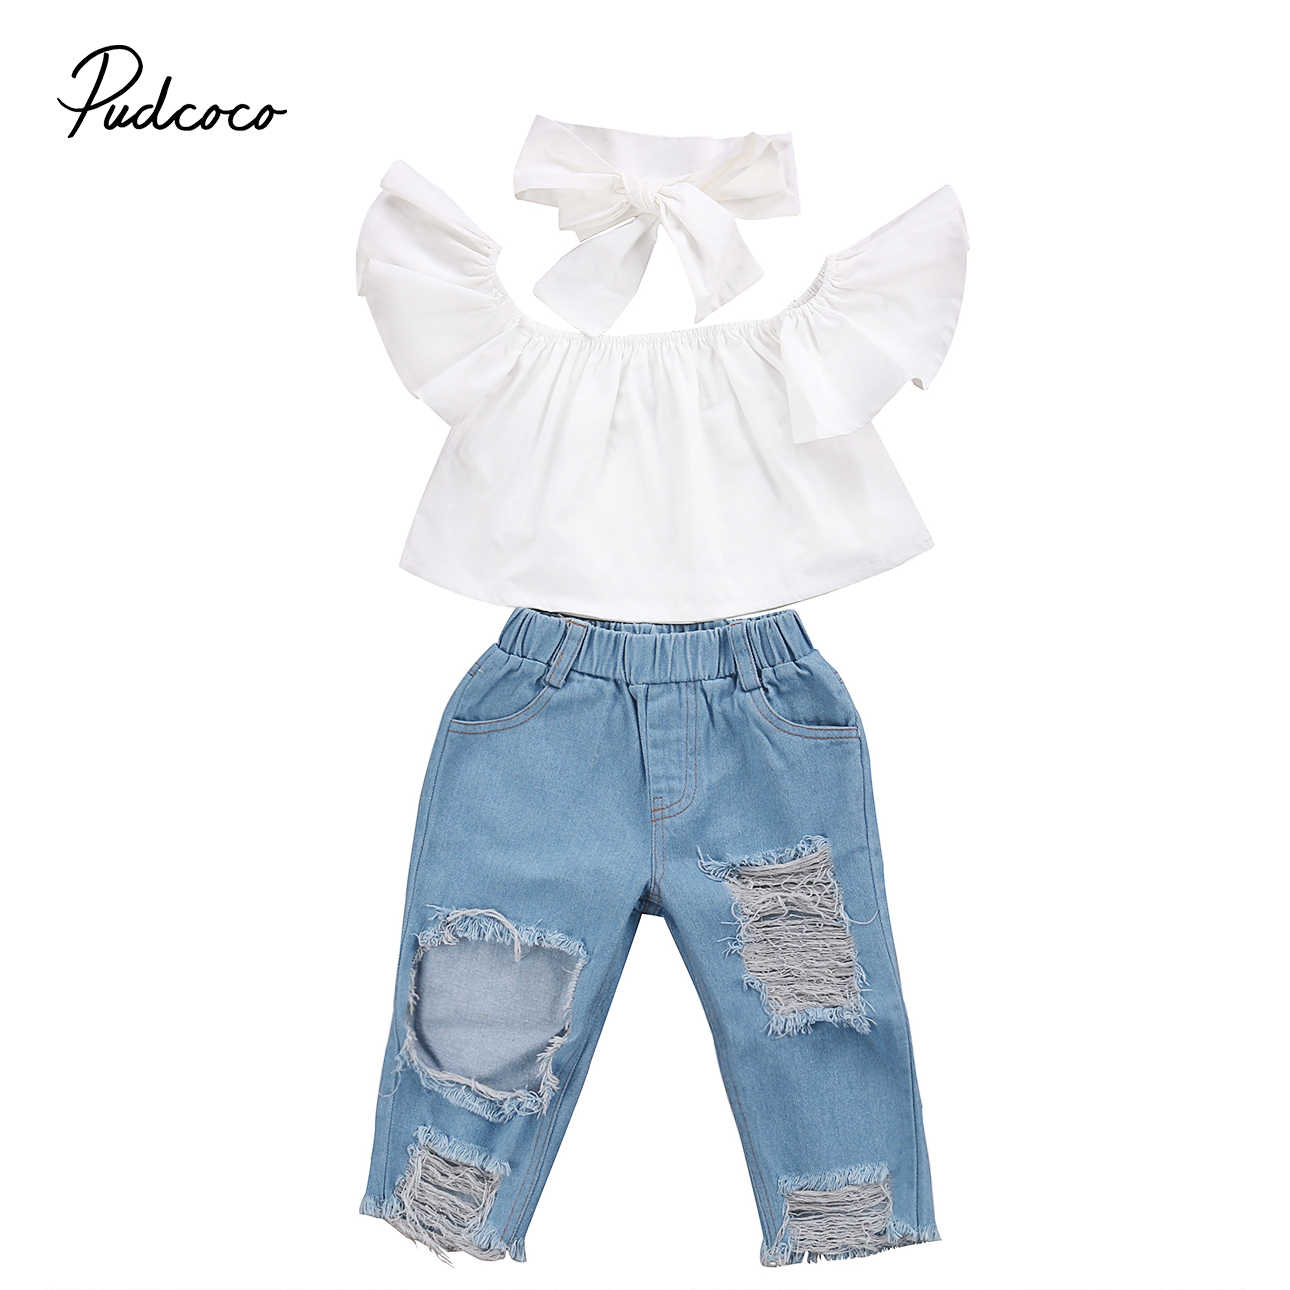 ff91f2727fe PUDCOCO 2017 Newest Hot Toddler Girls Kids Off Shoulder Tops+ Denim  Jeans+Headband 3pcs Outfits